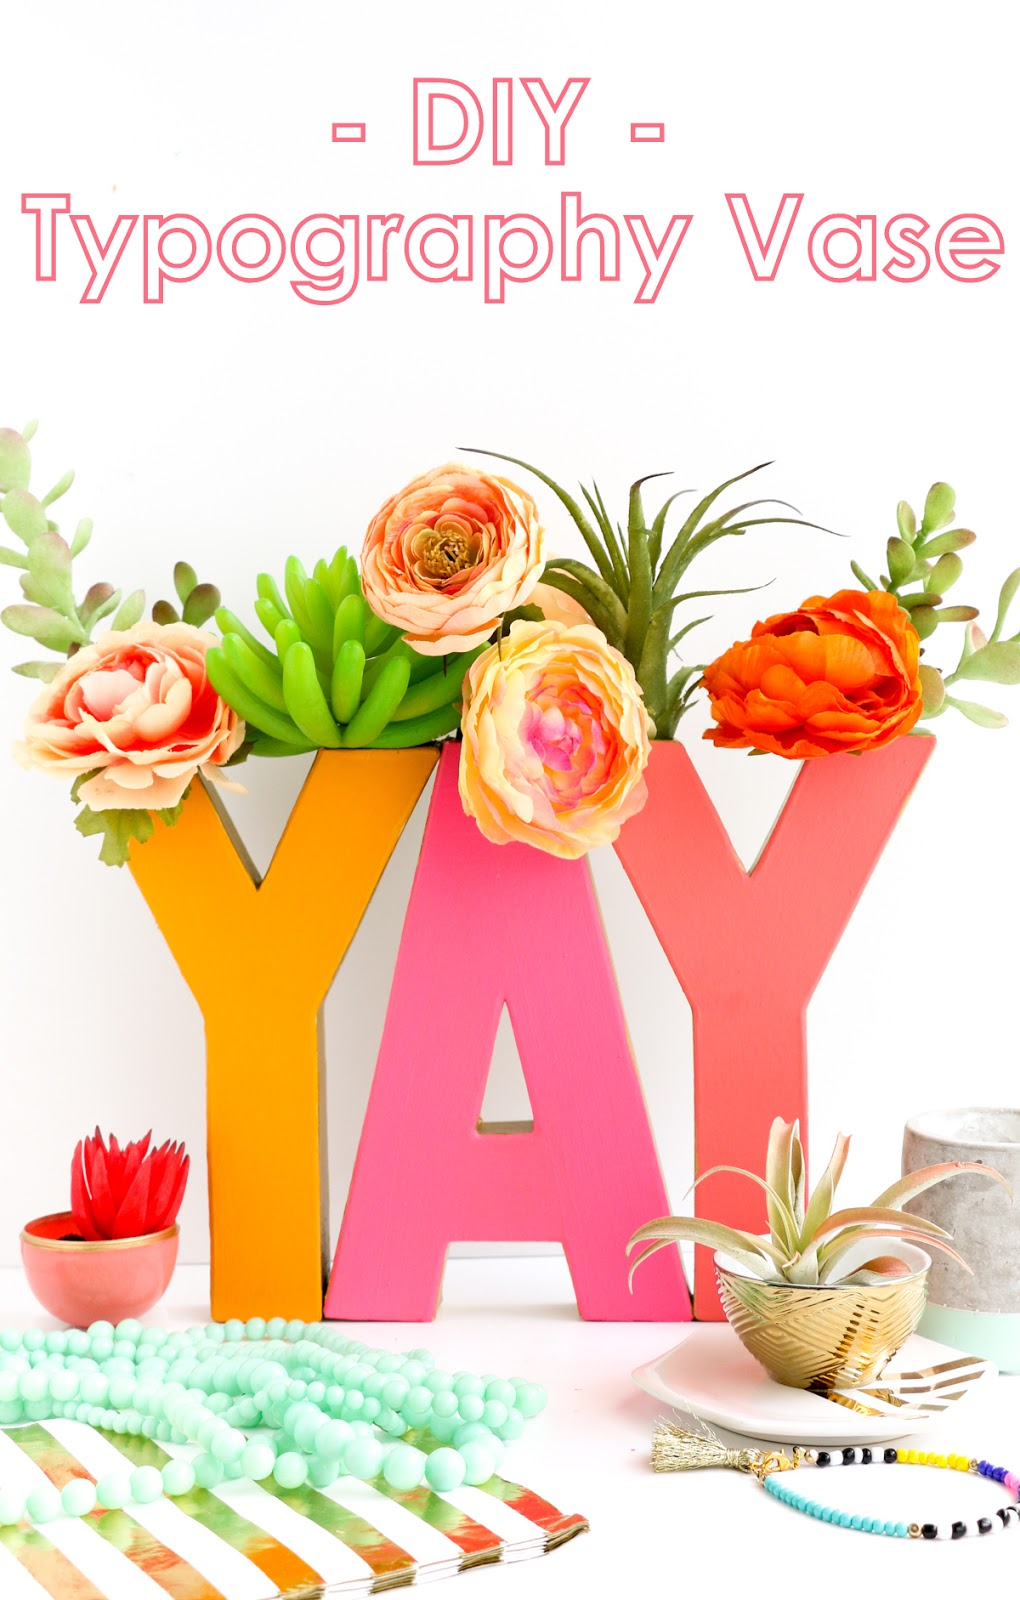 Make Your Own Custom, Oh Joy! For Target Inspired, Typography Vase Using  Cardboard